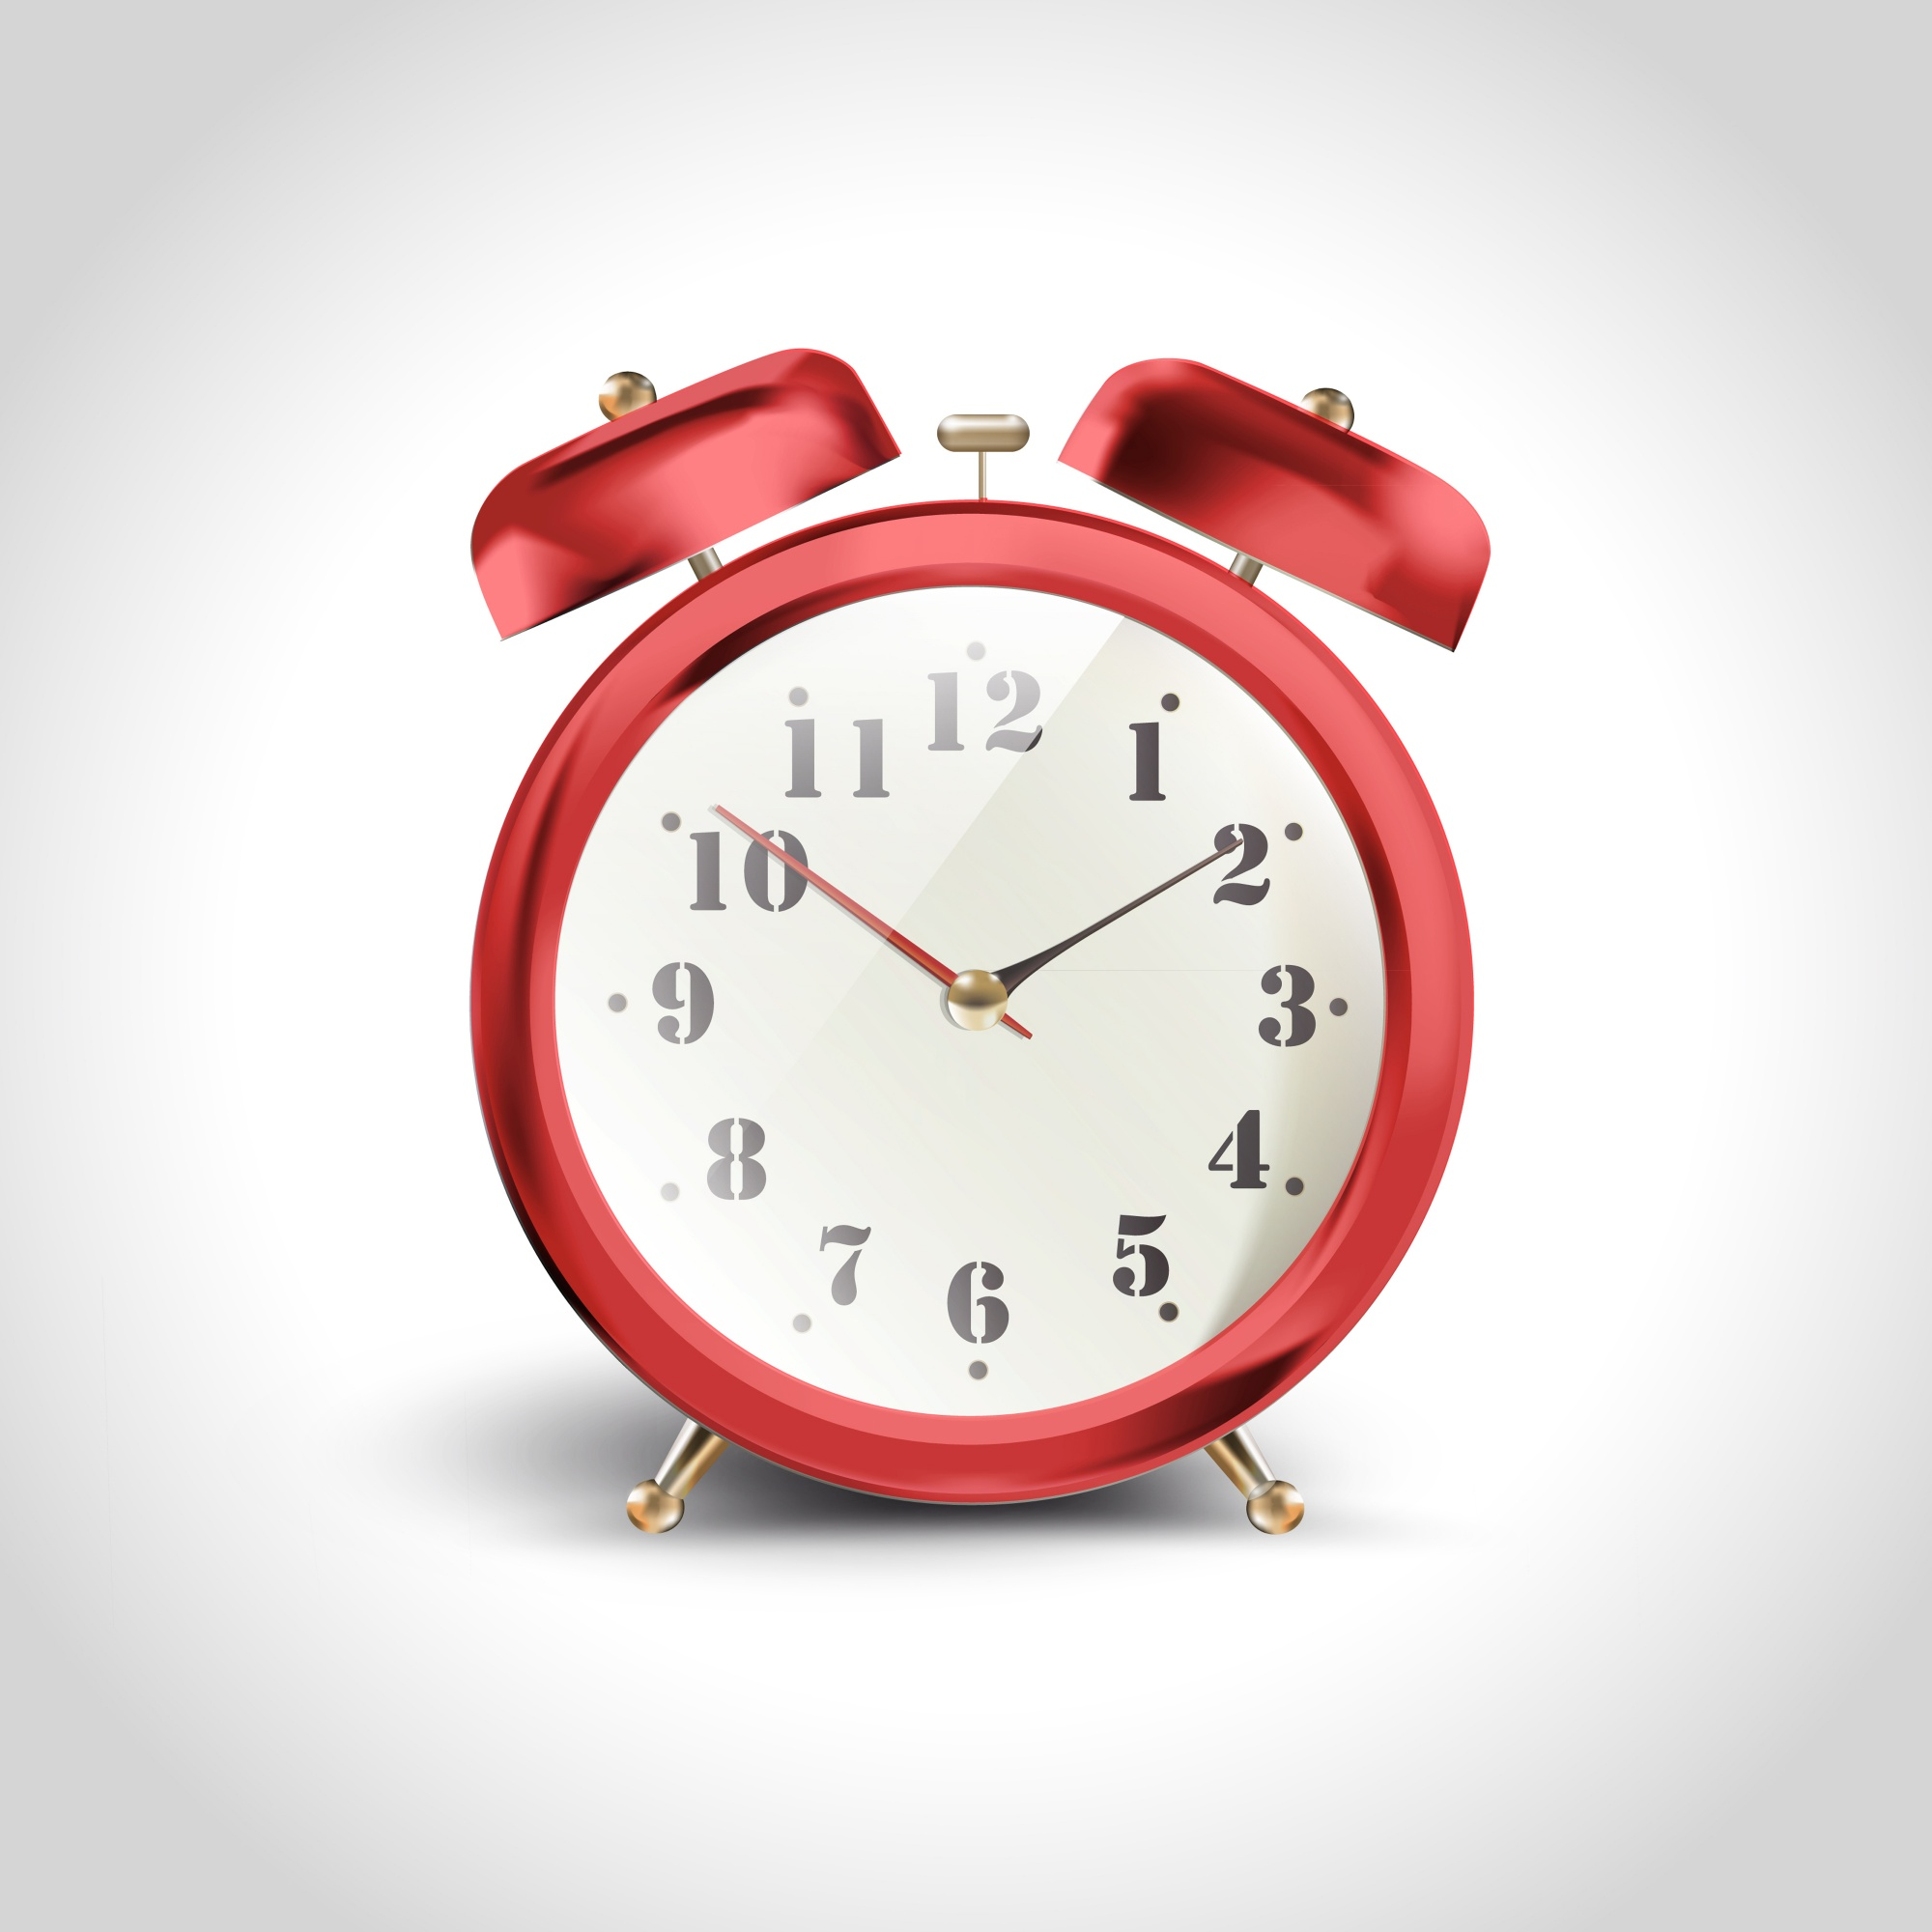 Minute clock morning background old